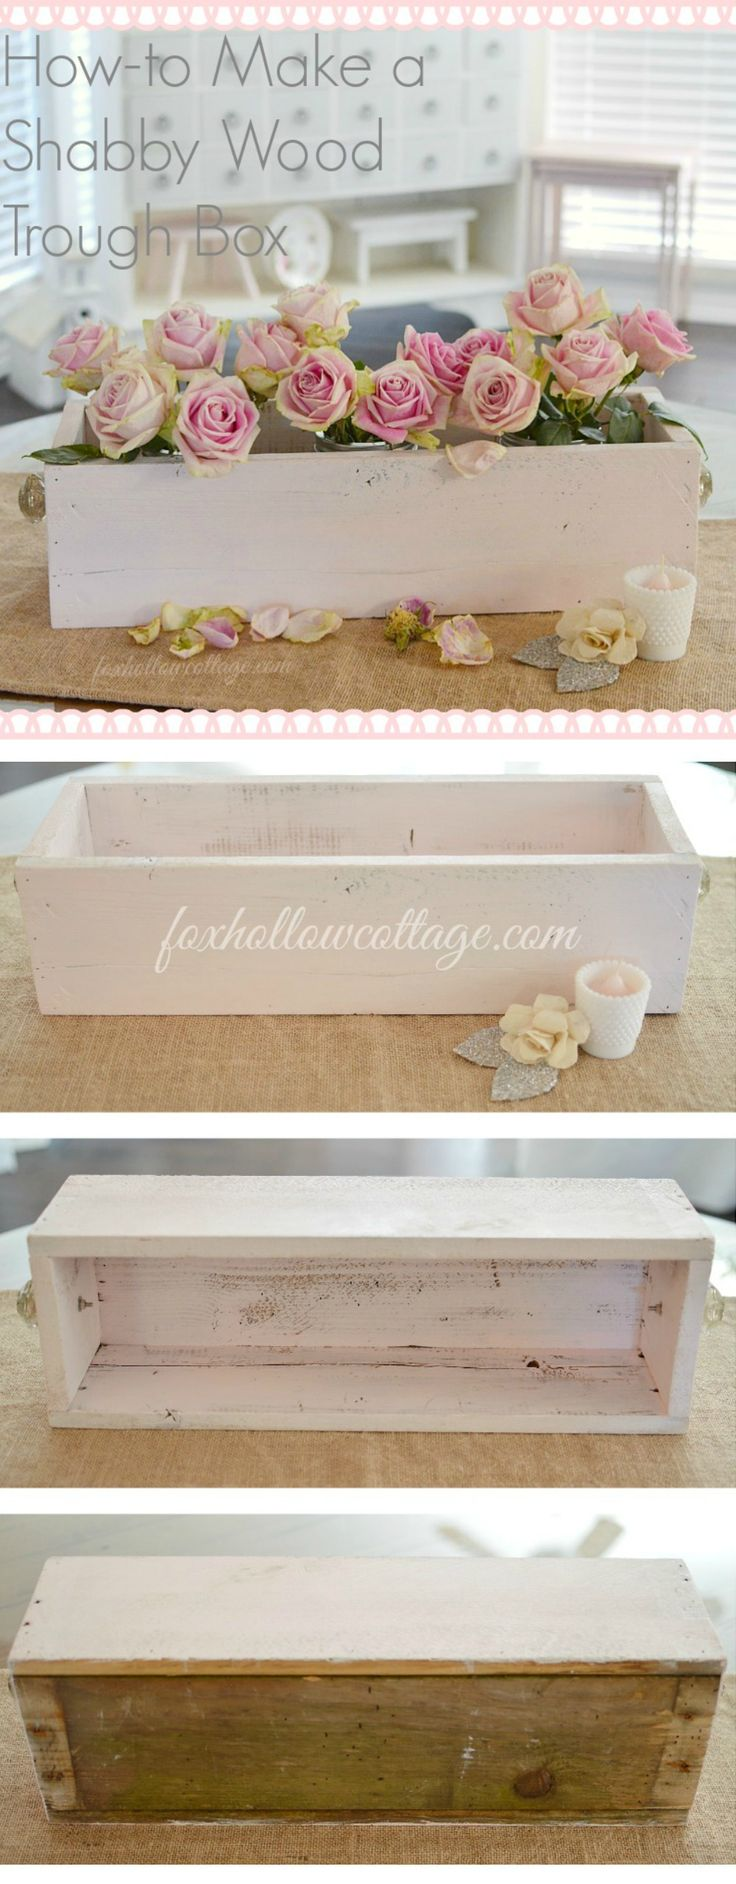 DIY Pallet Wood Home Decor | Simple DIY Project, easy to customize. Make it any size, in any color. Great for Spring in shabby pink. Perfect for parties table decor, centerpiece, even as a house-warming or thank you gift filled with flowers. foxhollowcotttage.com